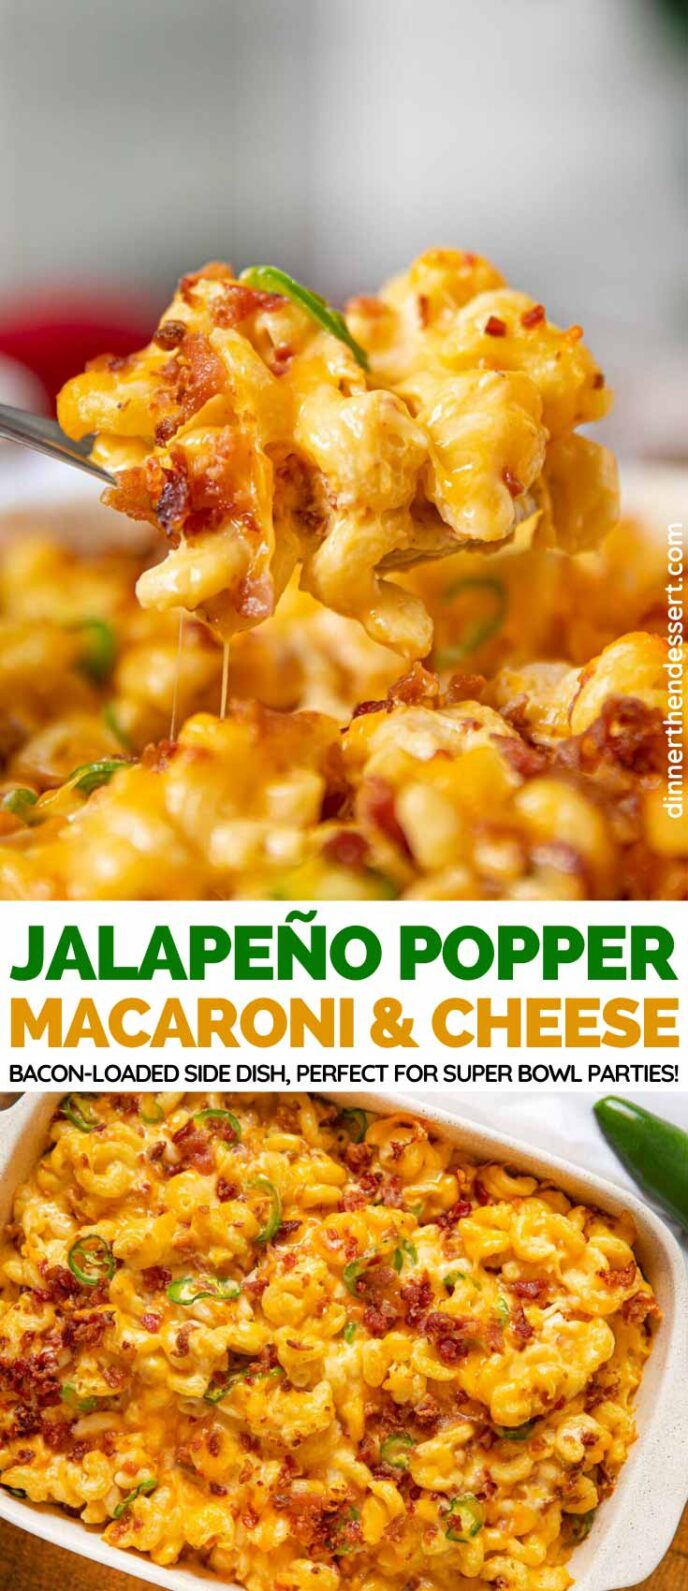 Jalapeno Popper Mac and Cheese collage